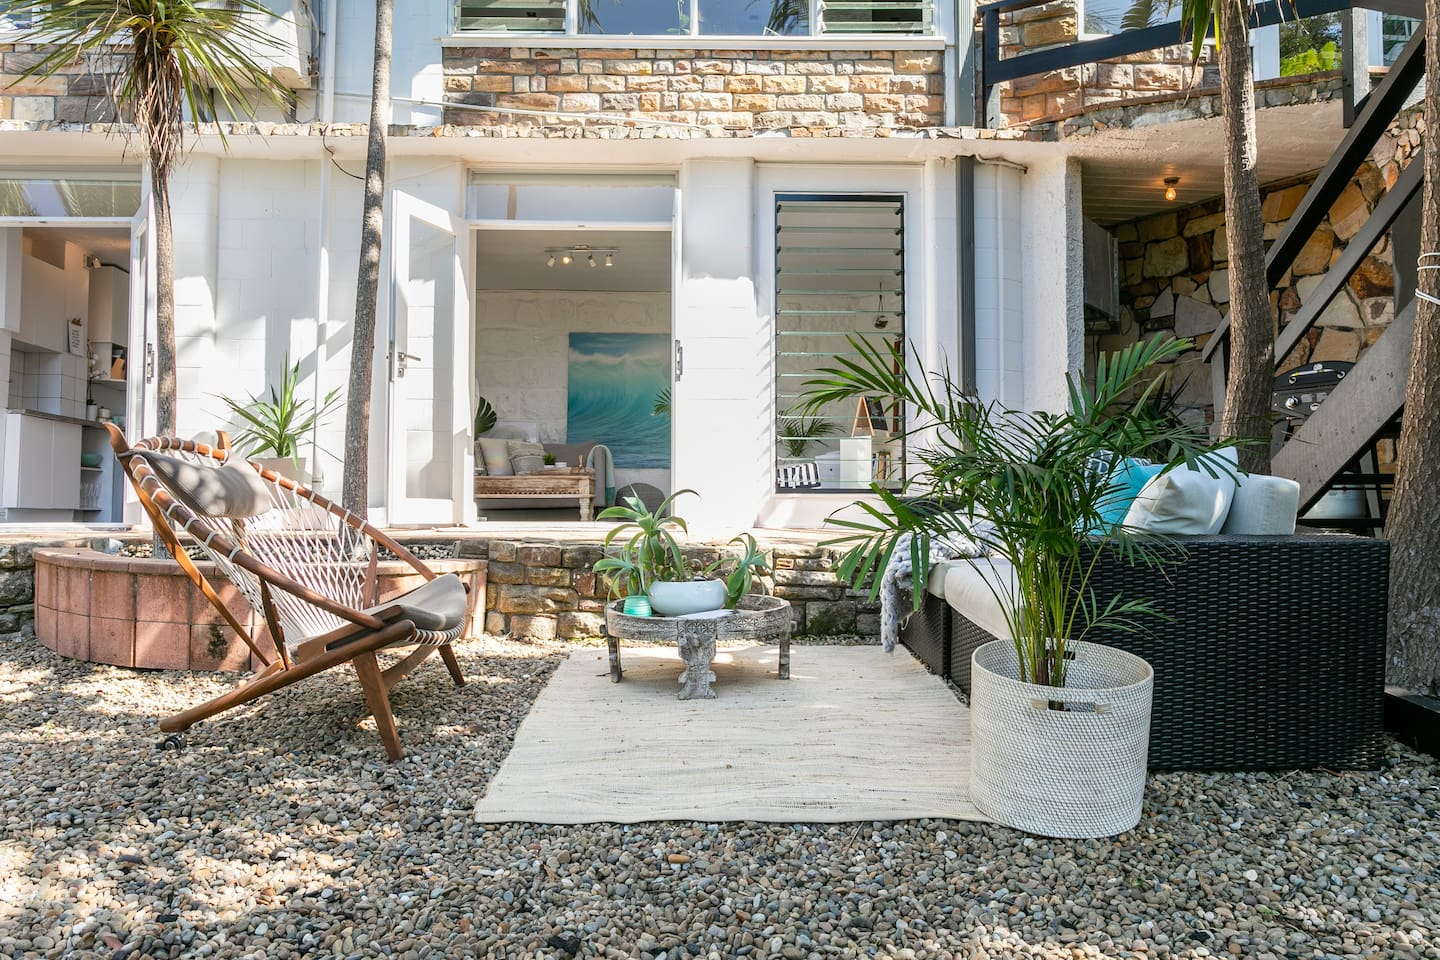 Backyard oasis with large comfy outdoor lounge, chairs, a hammock to relax in, outdoor shower to rinse off after a beach swim & double french doors into the studio. Light airy & so peaceful! BBQ to enjoy & a fire-pit to roast marshmallows & stargaze!